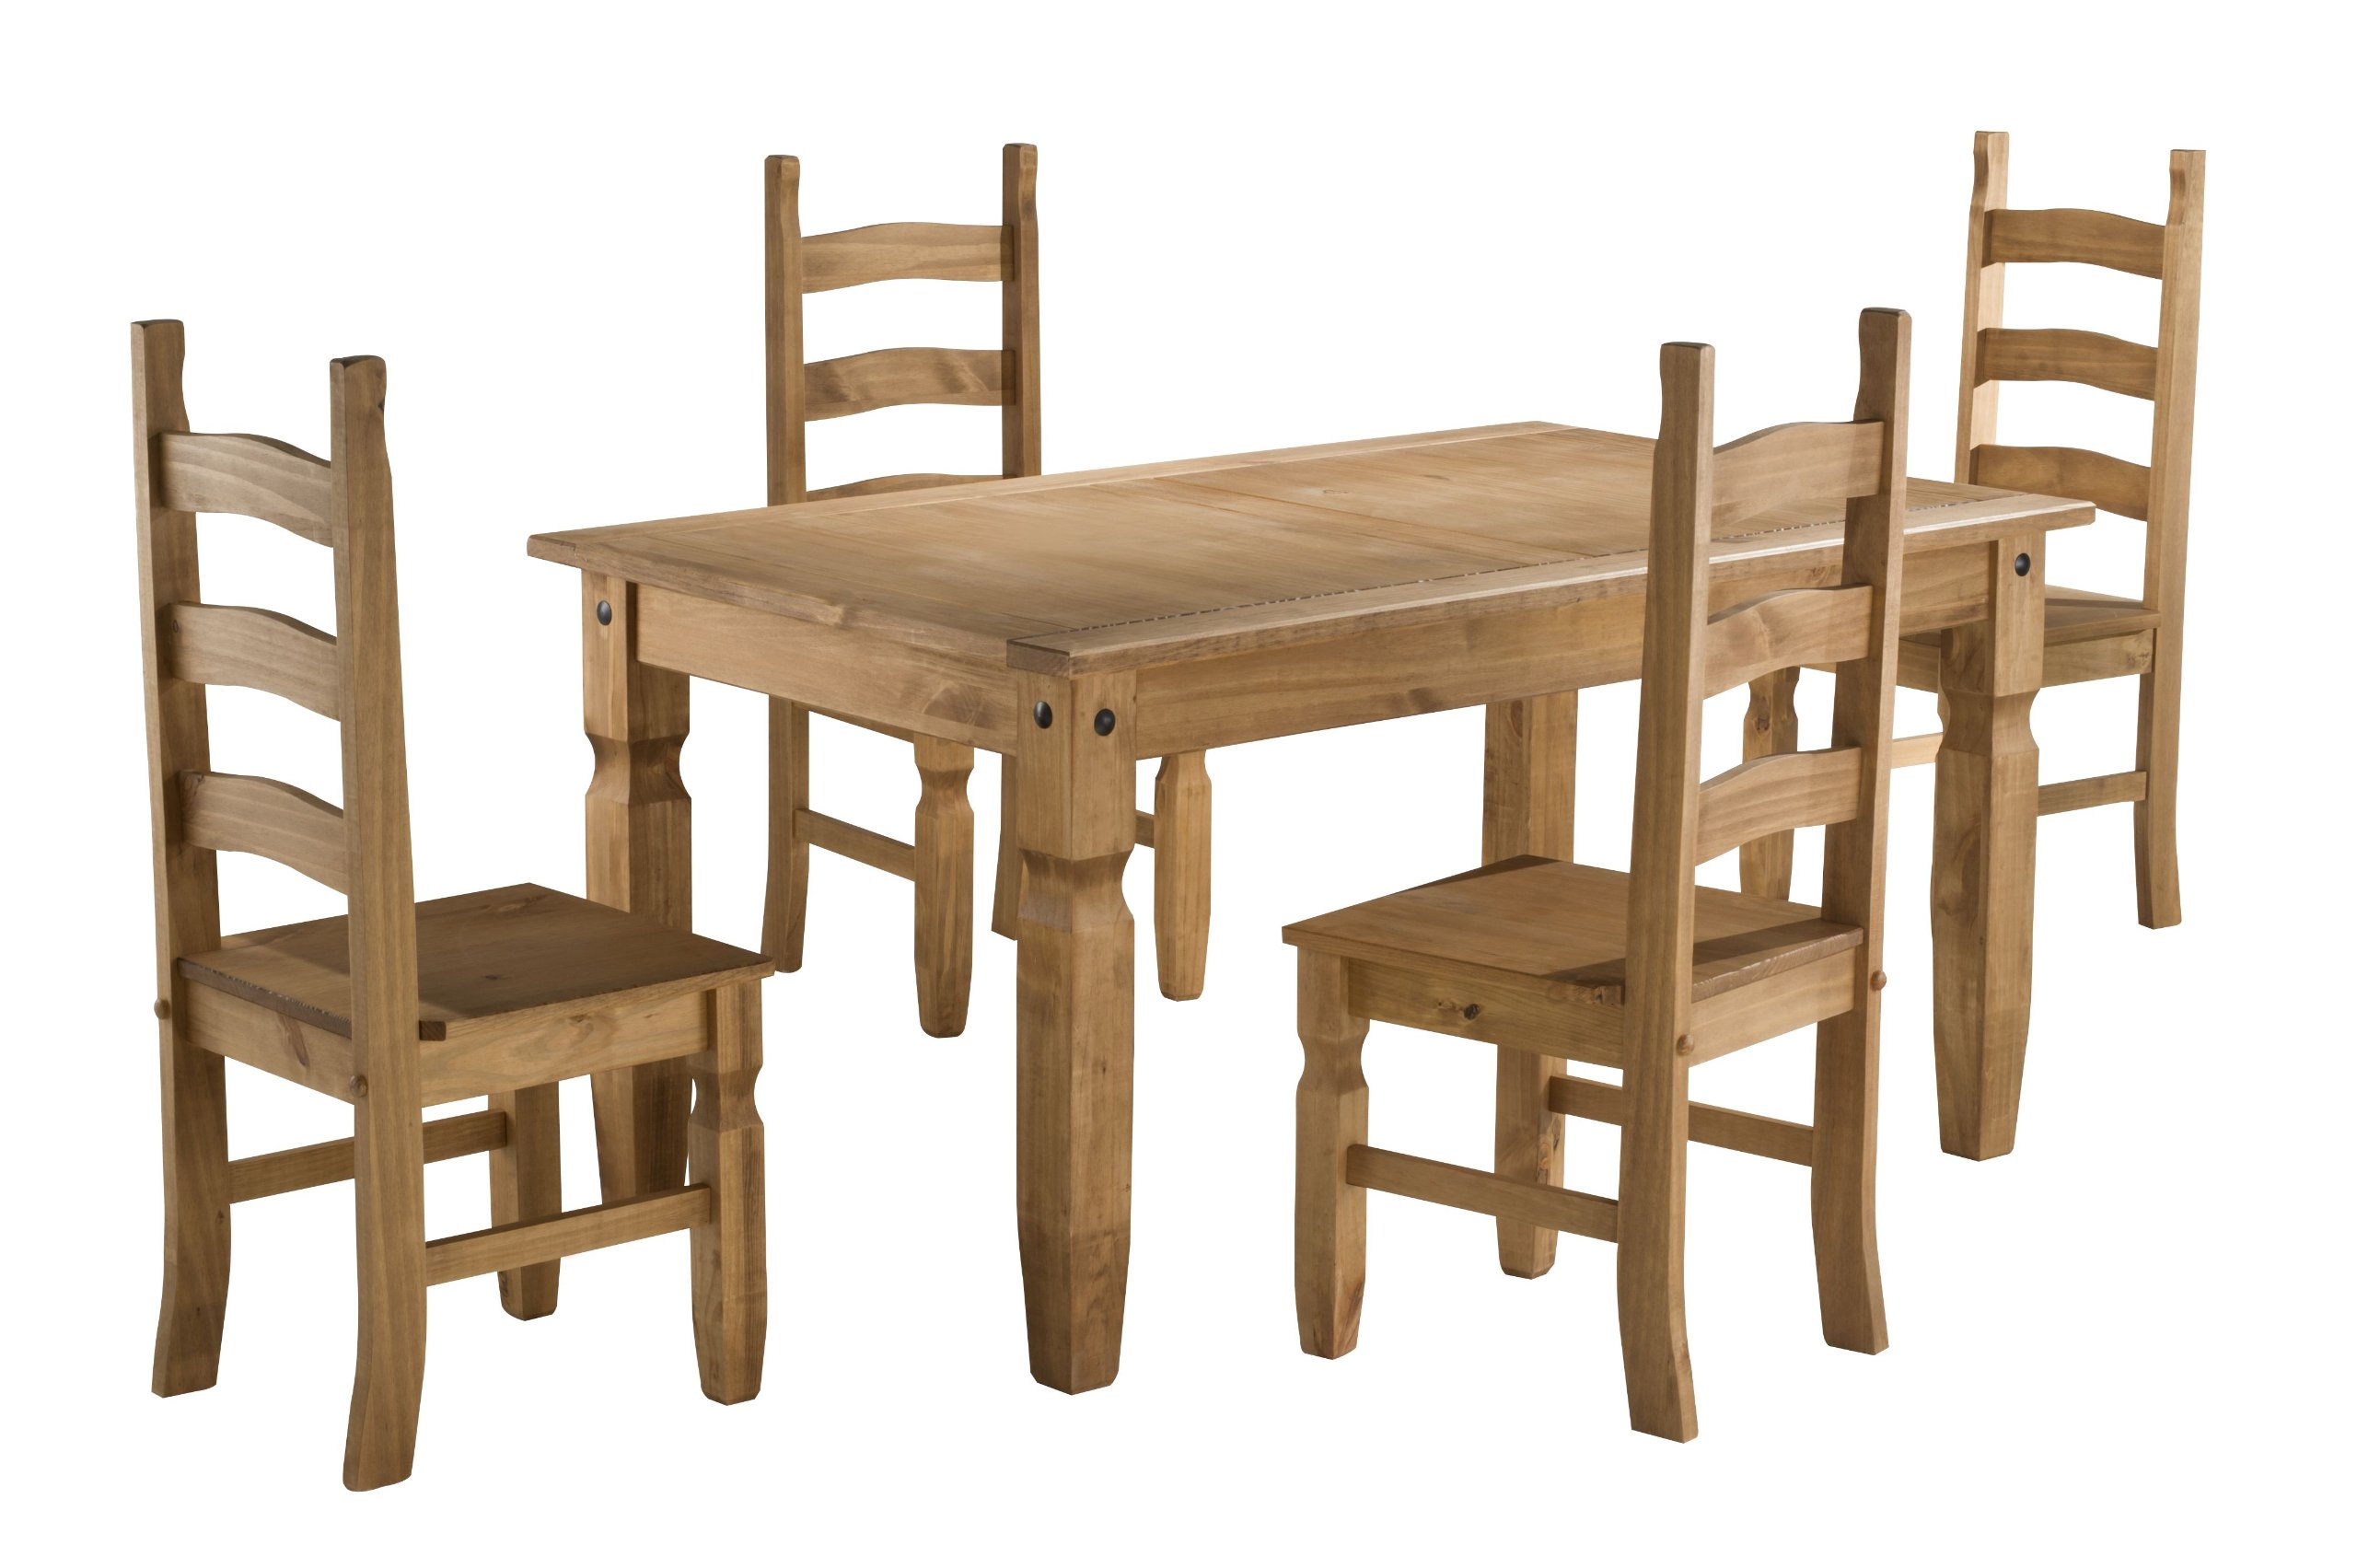 pine dining room table and chairs amazon co uk rh amazon co uk Metal Dining Table and Chairs Dining Table 6 Chair Set